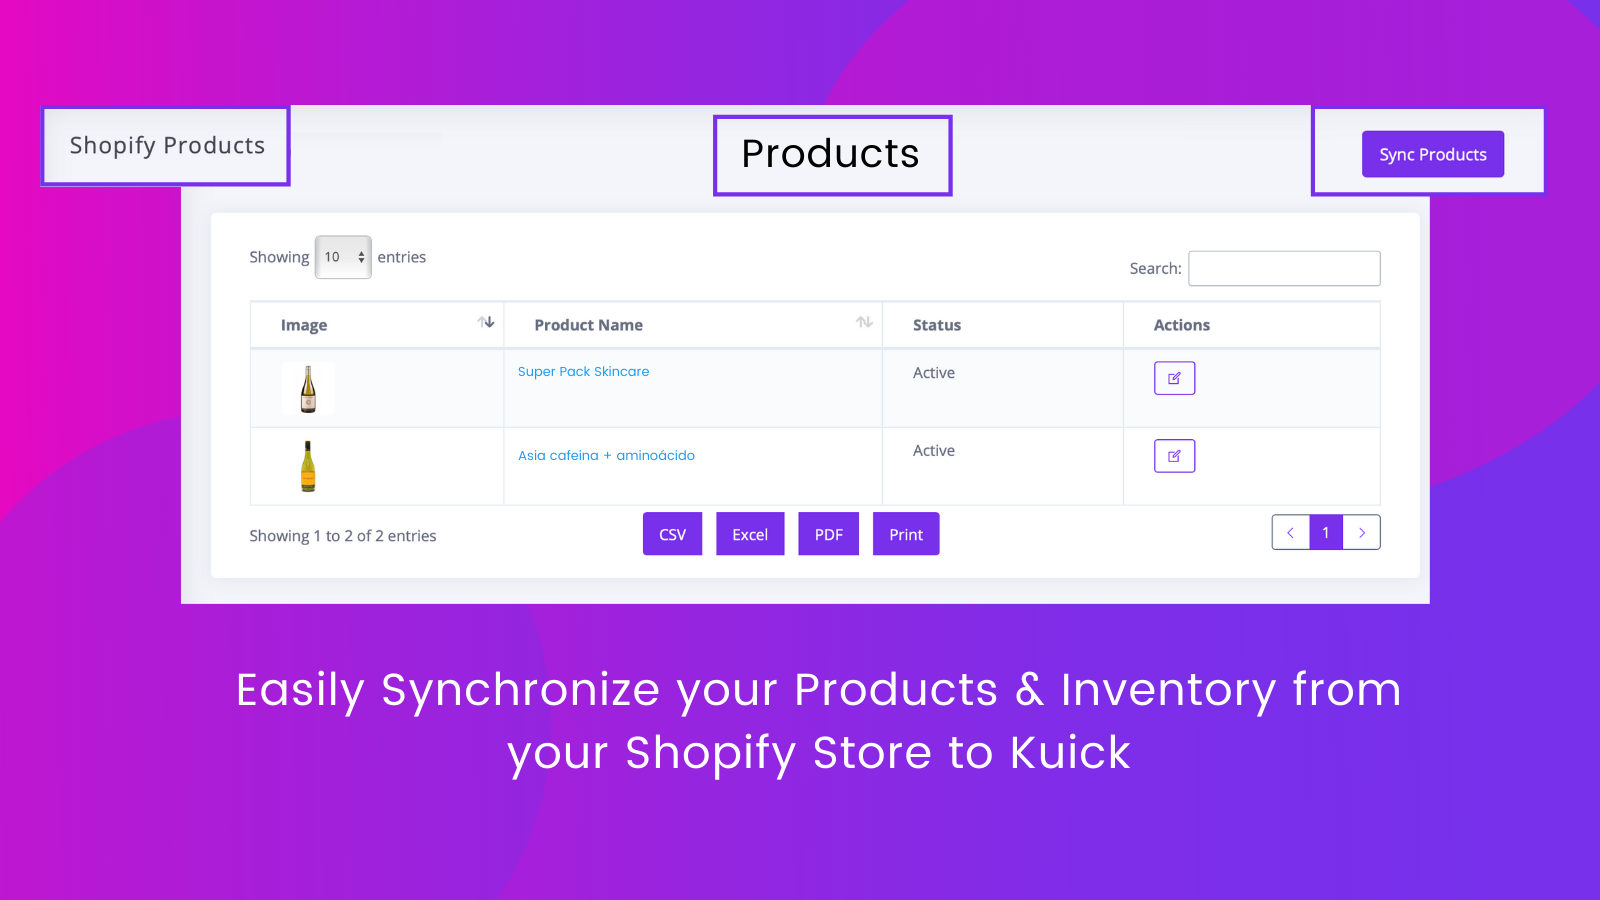 Synchronize your Products & Inventory from Shopify to Kuick